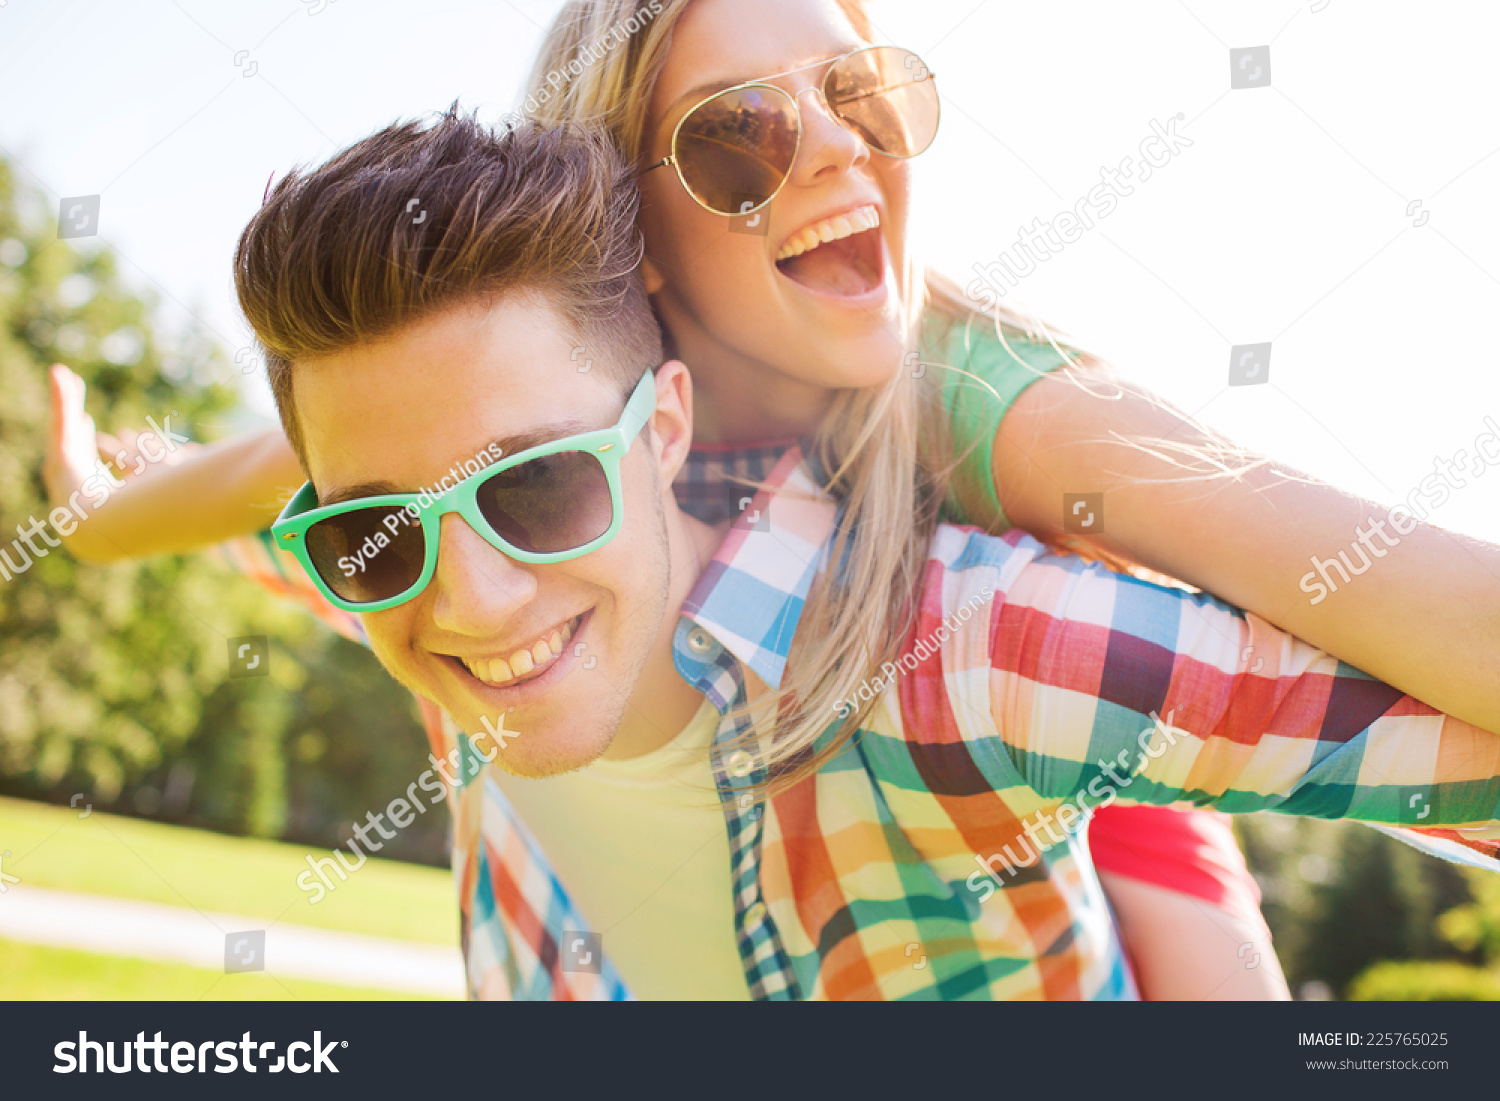 holidays, vacation, love and friendship concept - smiling teen couple in sunglasses having fun in summer park #225765025